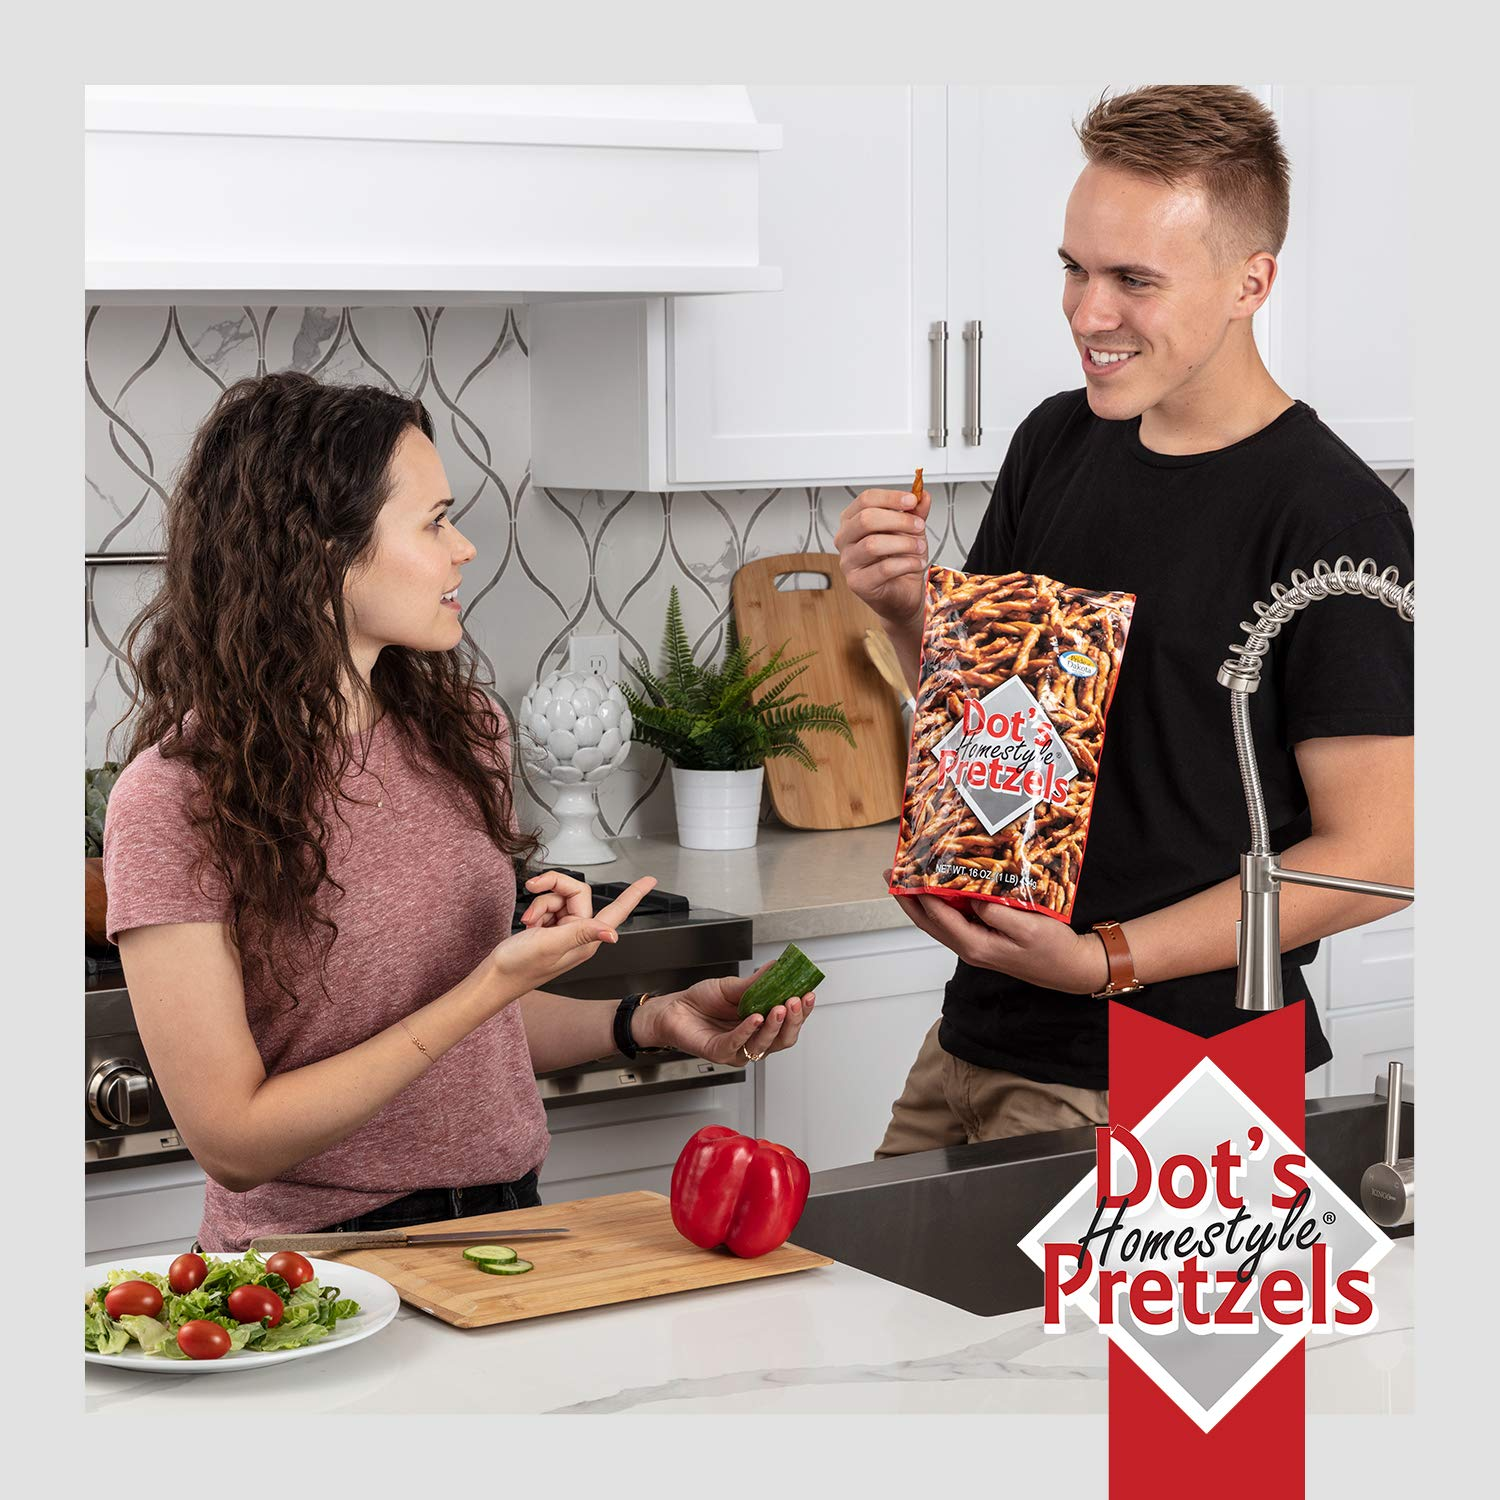 Dot's Homestyle Pretzels 1 lb. Bag (5 Bags) 16 oz. Seasoned Pretzel Snack Sticks (Packaging May Vary) by Dot's Homestyle Pretzels (Image #6)